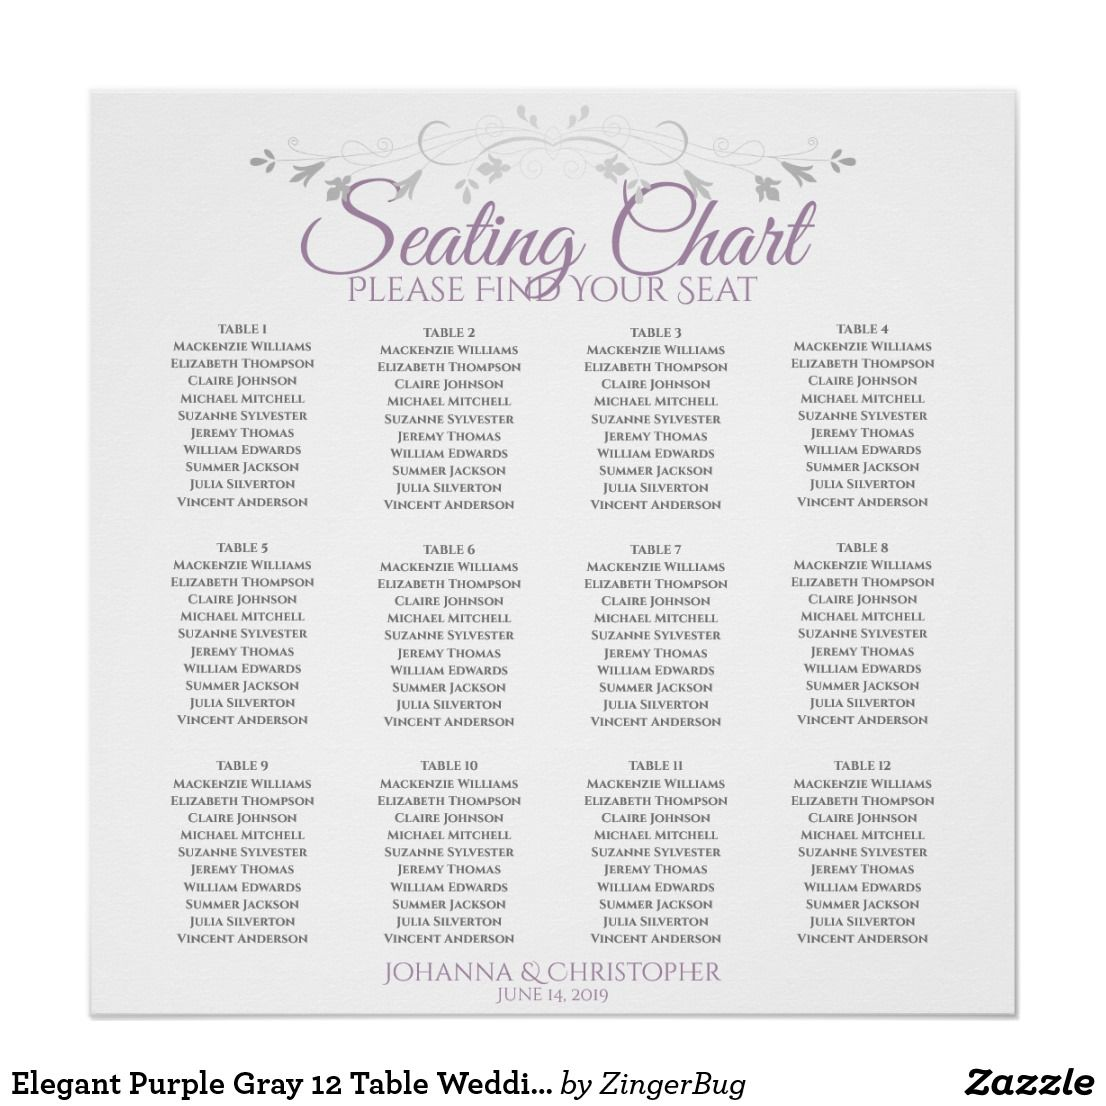 Elegant Purple Gray 12 Table Wedding Seating Chart Zazzle Com Wedding Seating Seating Chart Wedding Seating Charts